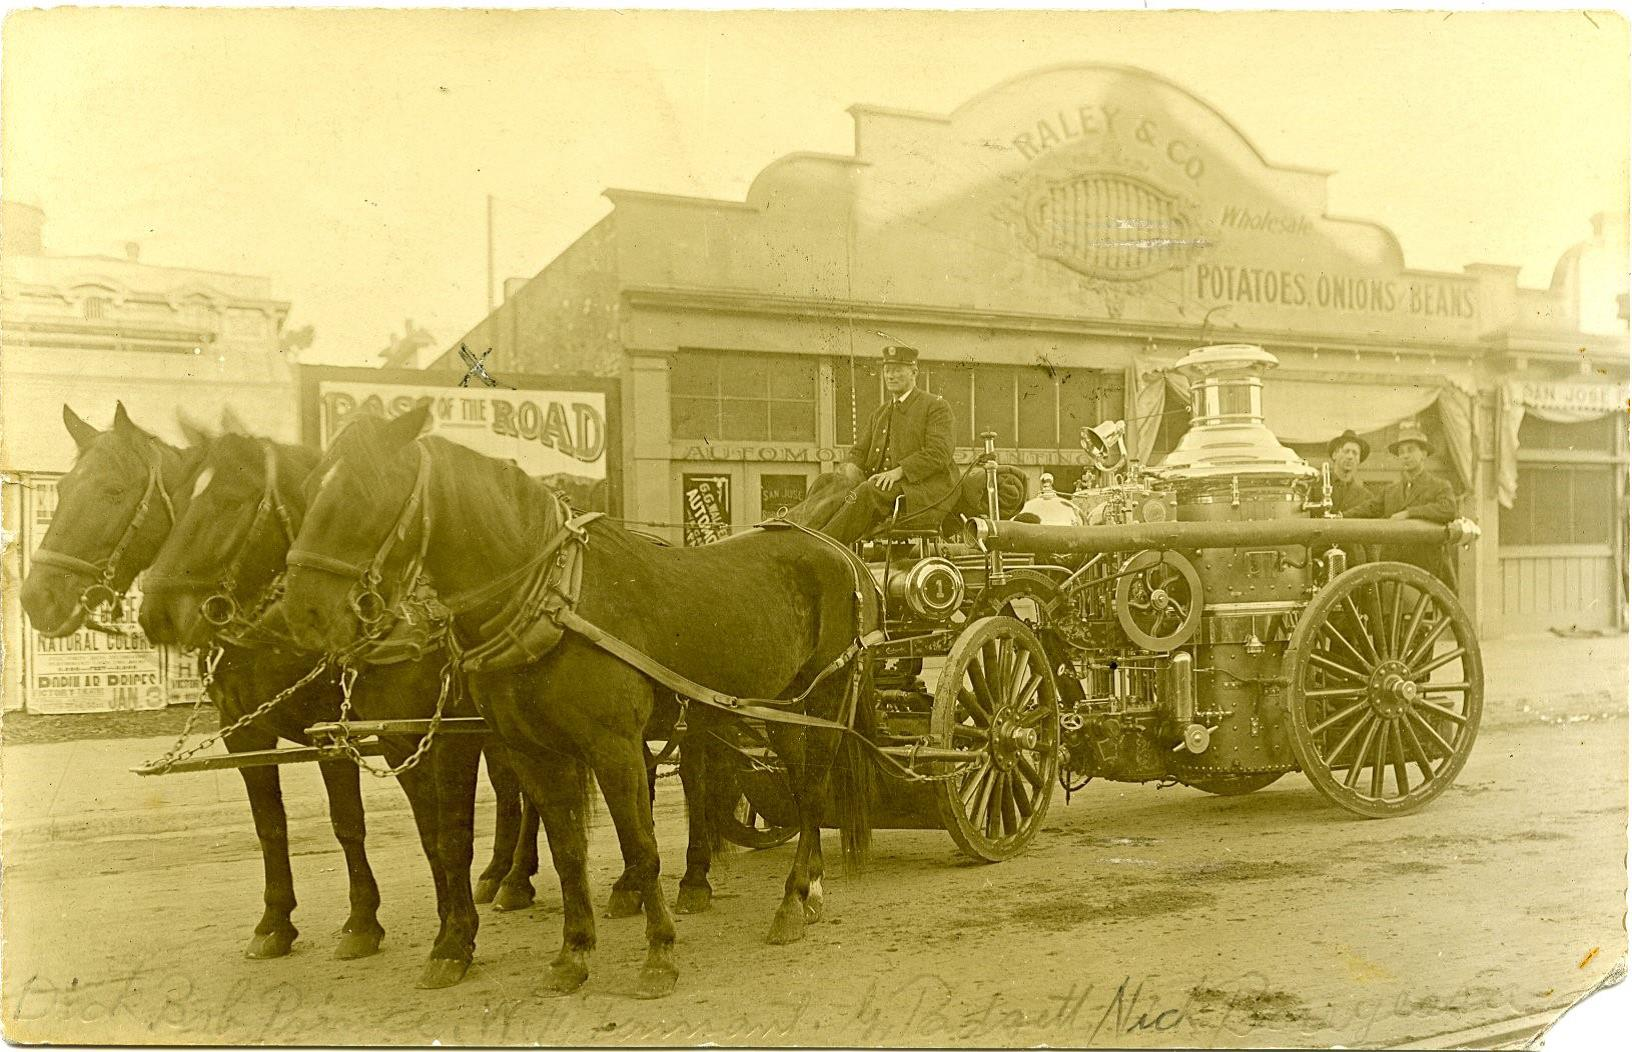 A San Jose Fire Department horse-drawn steam-powered fire engine, 1911 (image from the Sourisseau Academy)